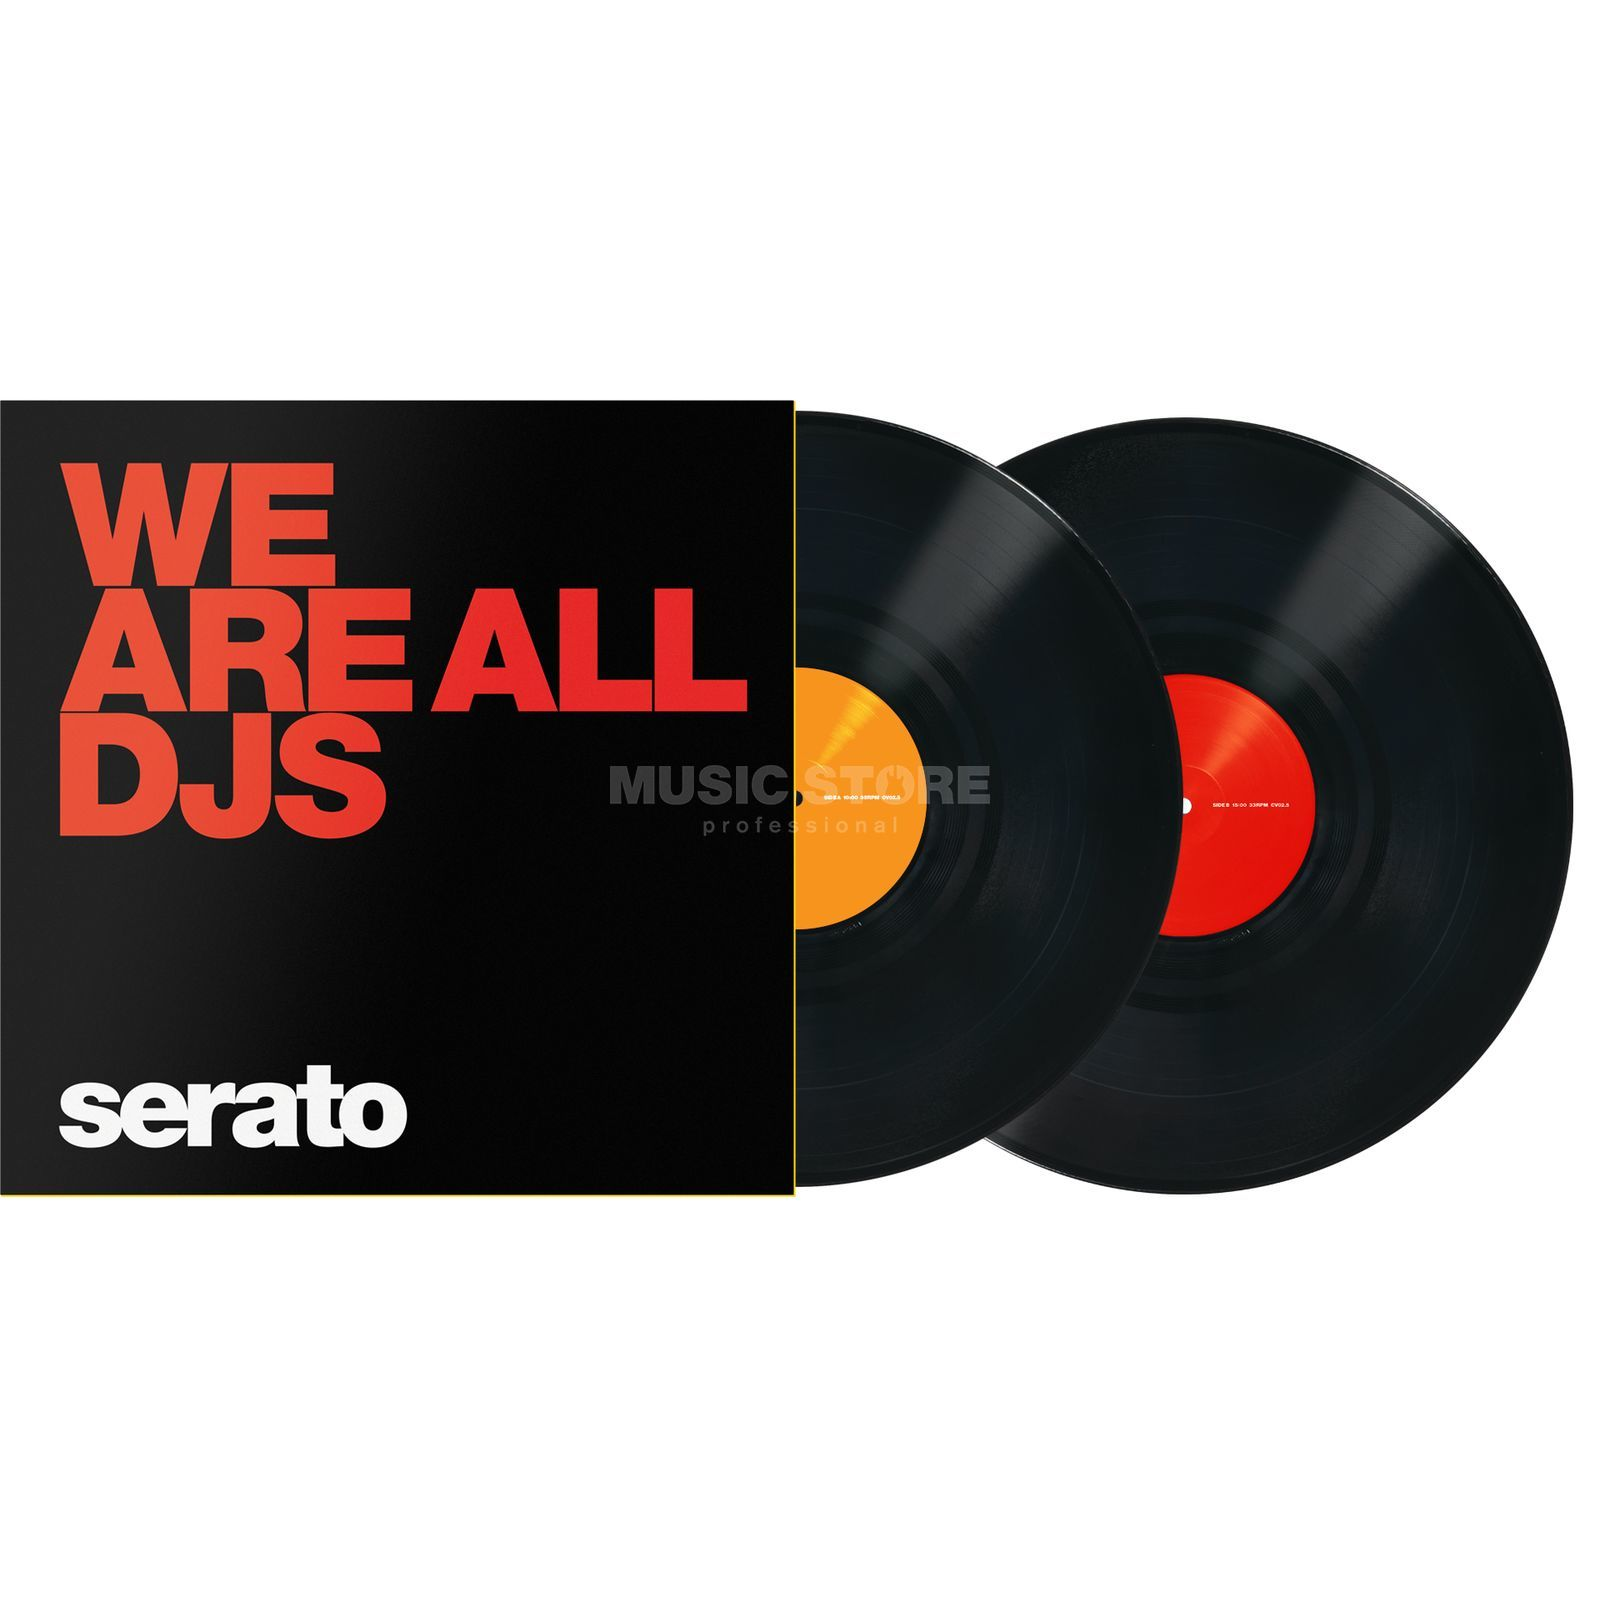 Serato Manifesto Control Vinyls Black, We are All DJs Product Image